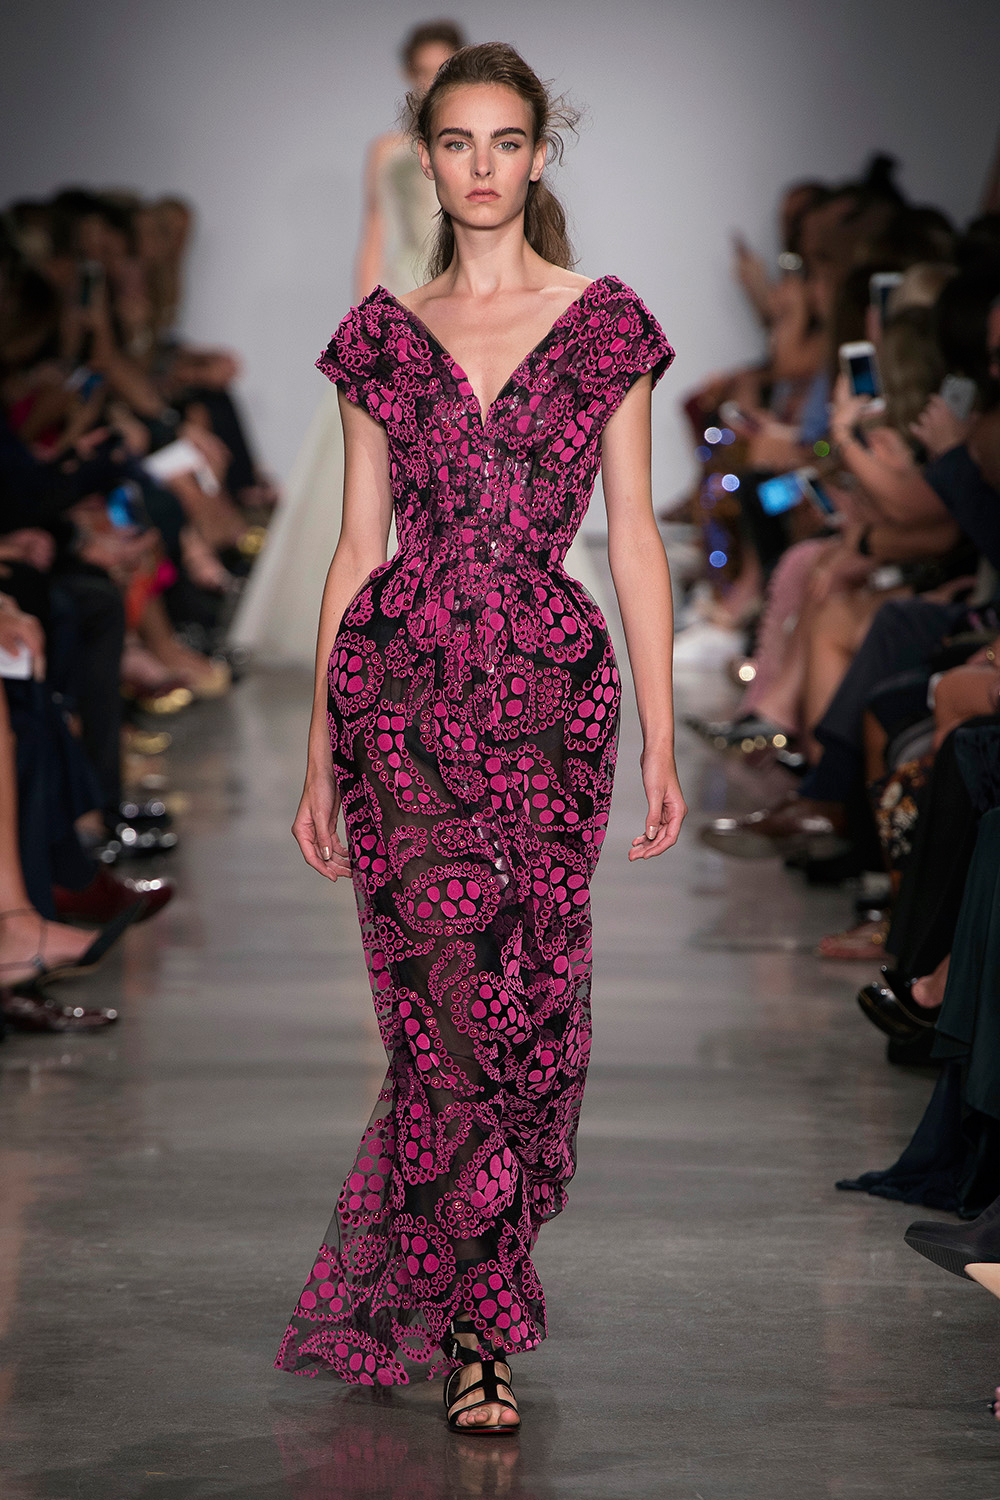 Look 45: Pink and Black Gown